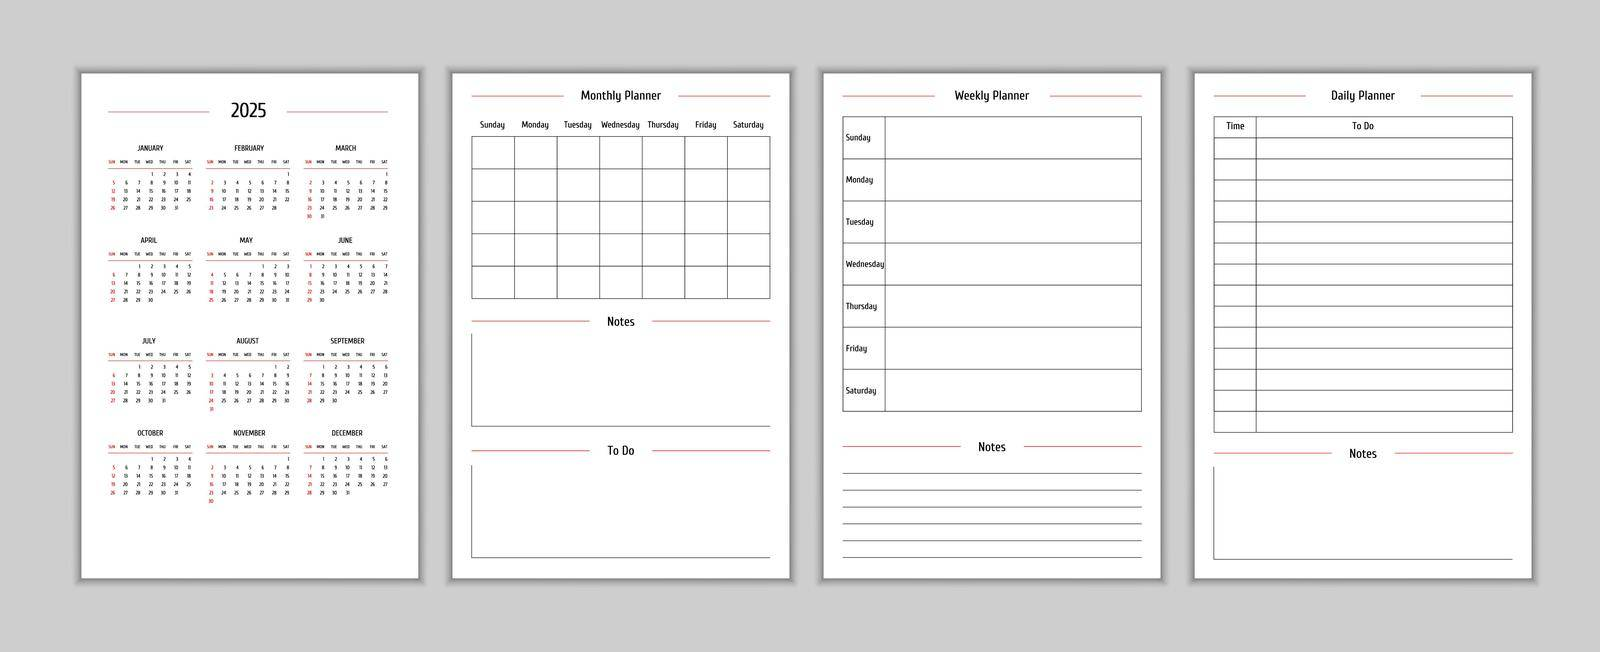 2025 calendar and daily weekly monthly personal planner diary template in classic strict style. Monthly calendar individual schedule minimalism restrained design for business notebook. Week starts on sunday